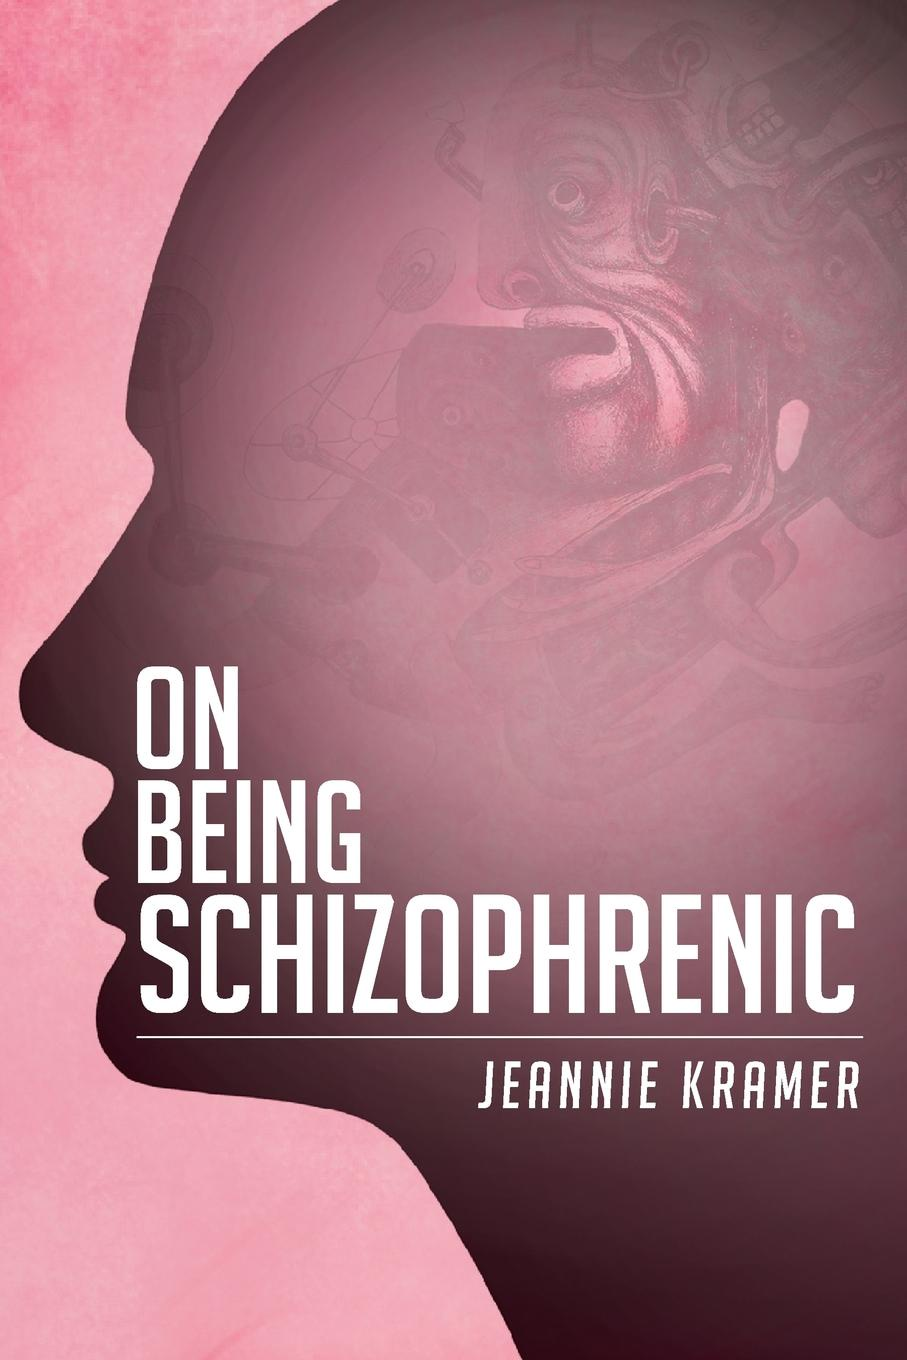 Jeannie Kramer On Being Schizophrenic